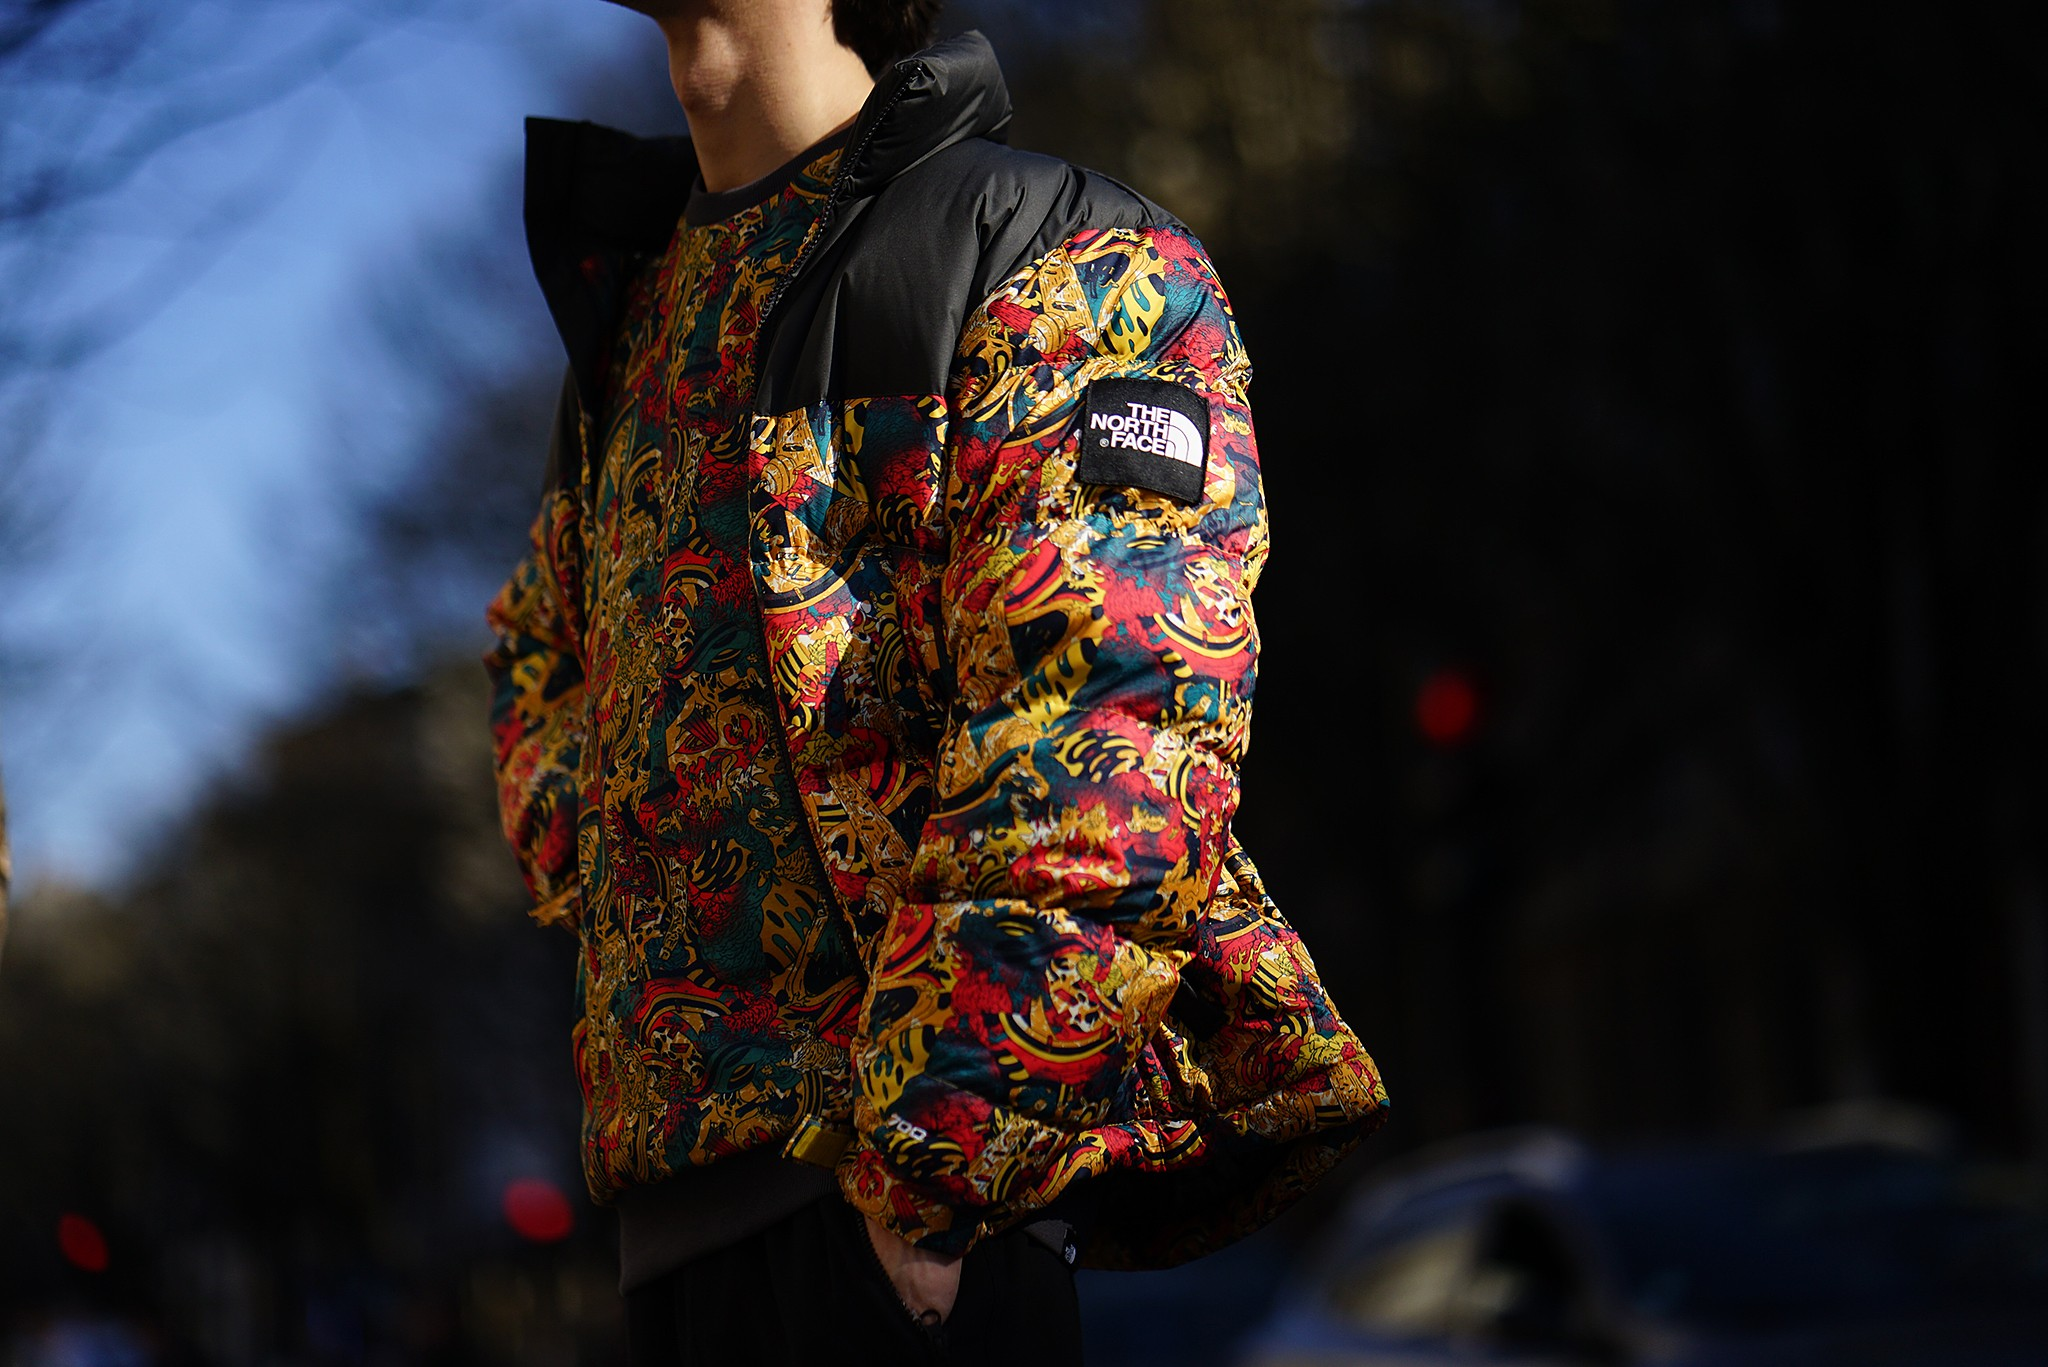 THE NORTH FACE 'EXPEDITION AFRICA' CAPSULE